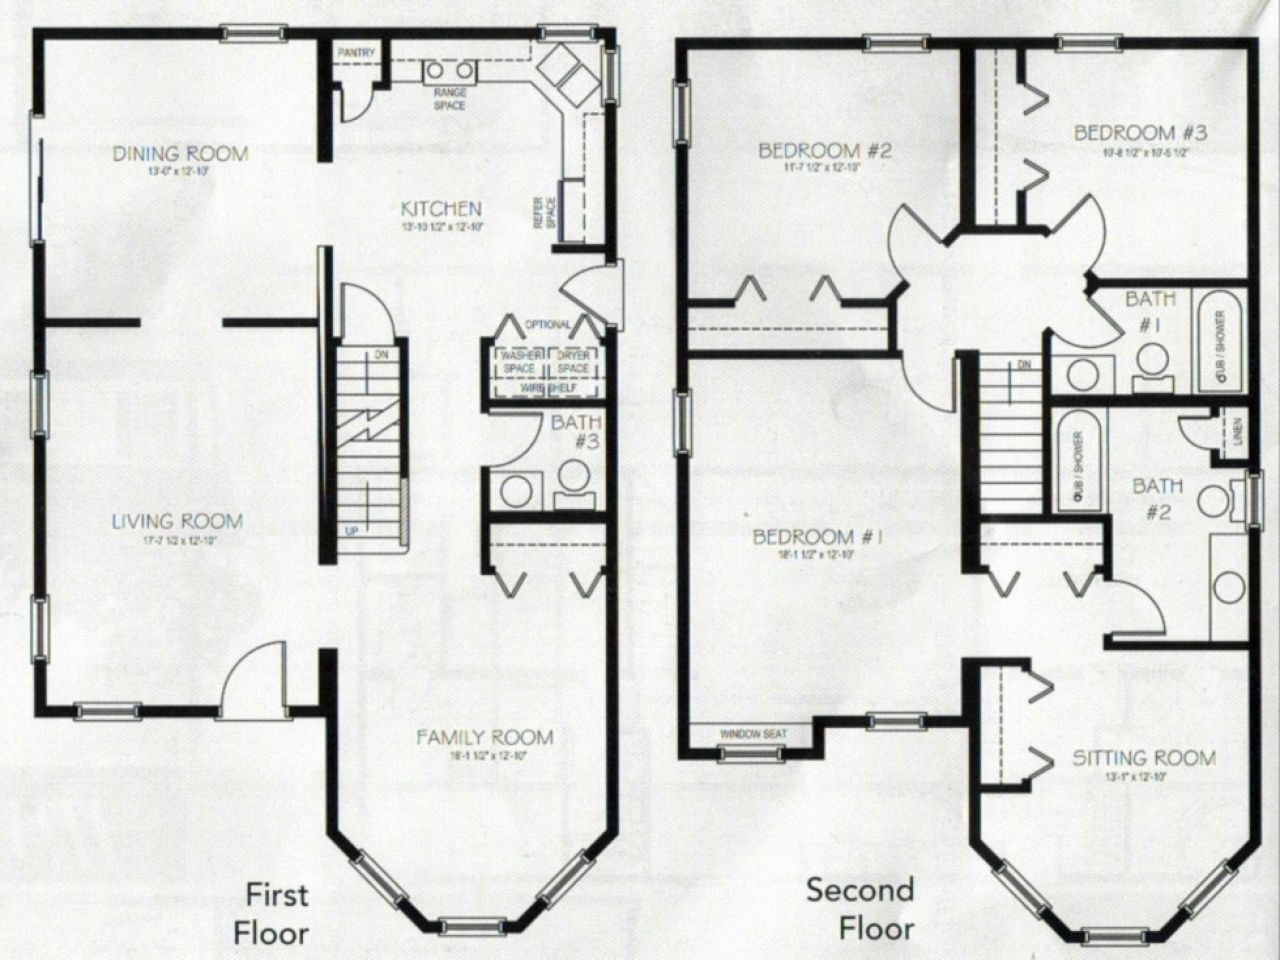 ICYMI 6 Bedroom House Plans In South Africa pathologyandhistology